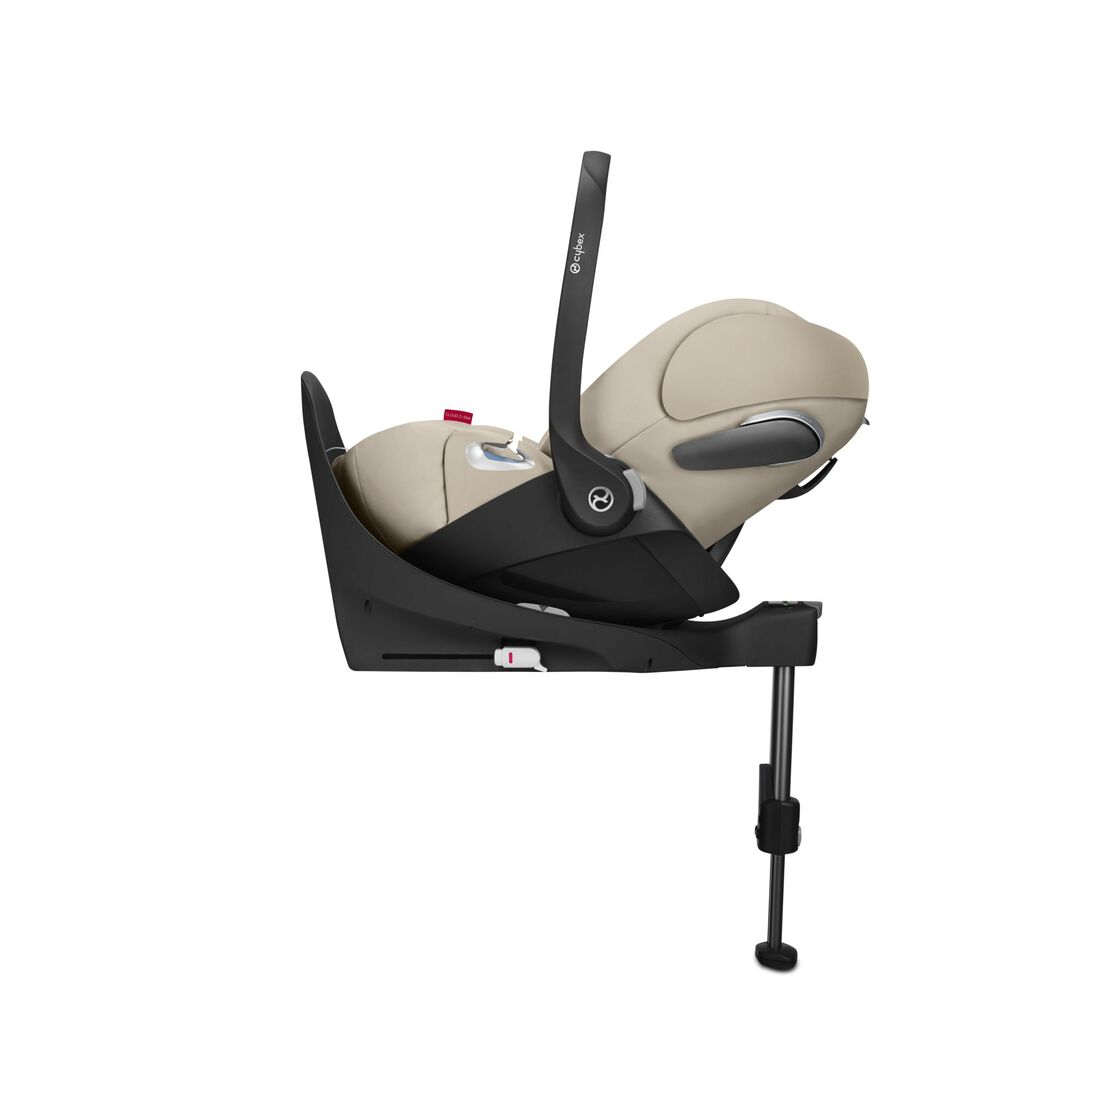 CYBEX Cloud Z i-Size - Ferrari Silver Grey in Ferrari Silver Grey large Bild 5